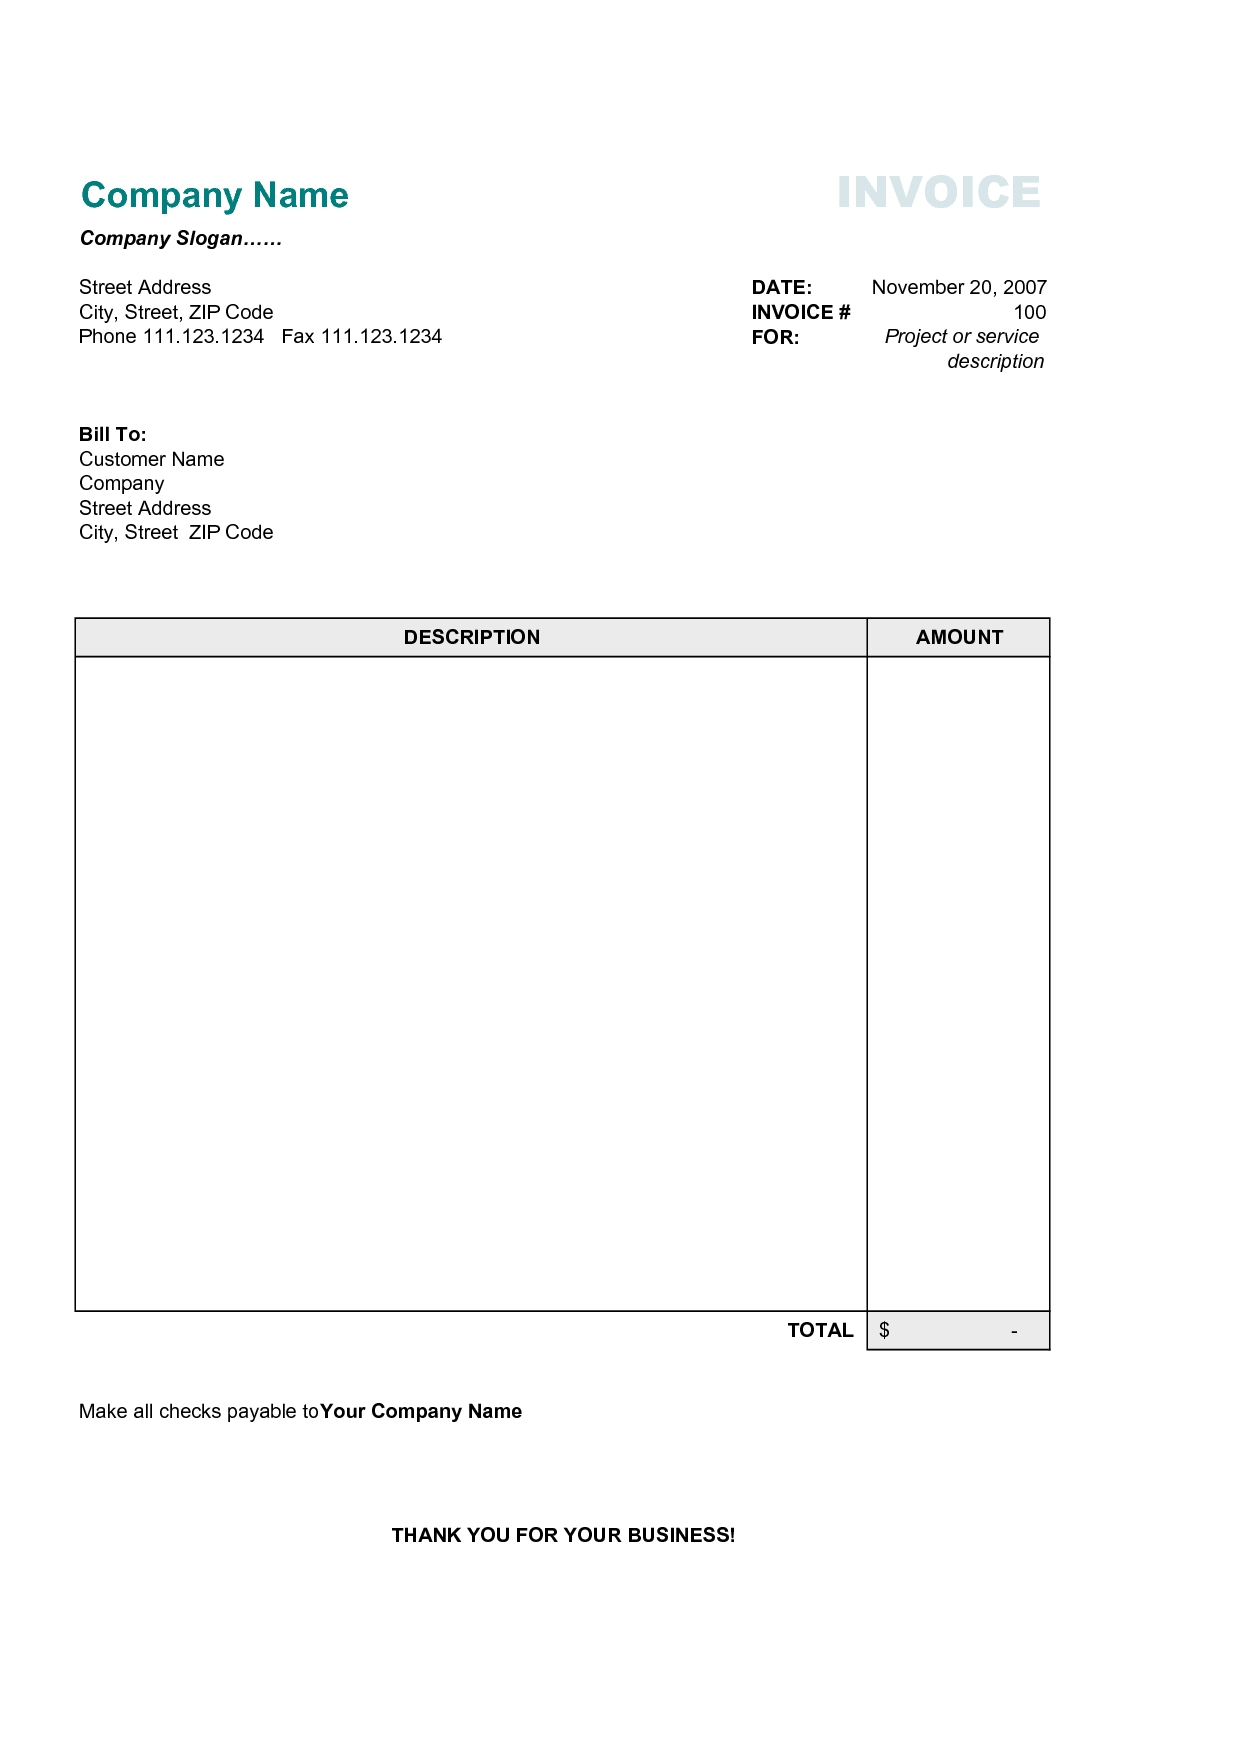 invoice template simple  Simple Invoice Template | invoice example